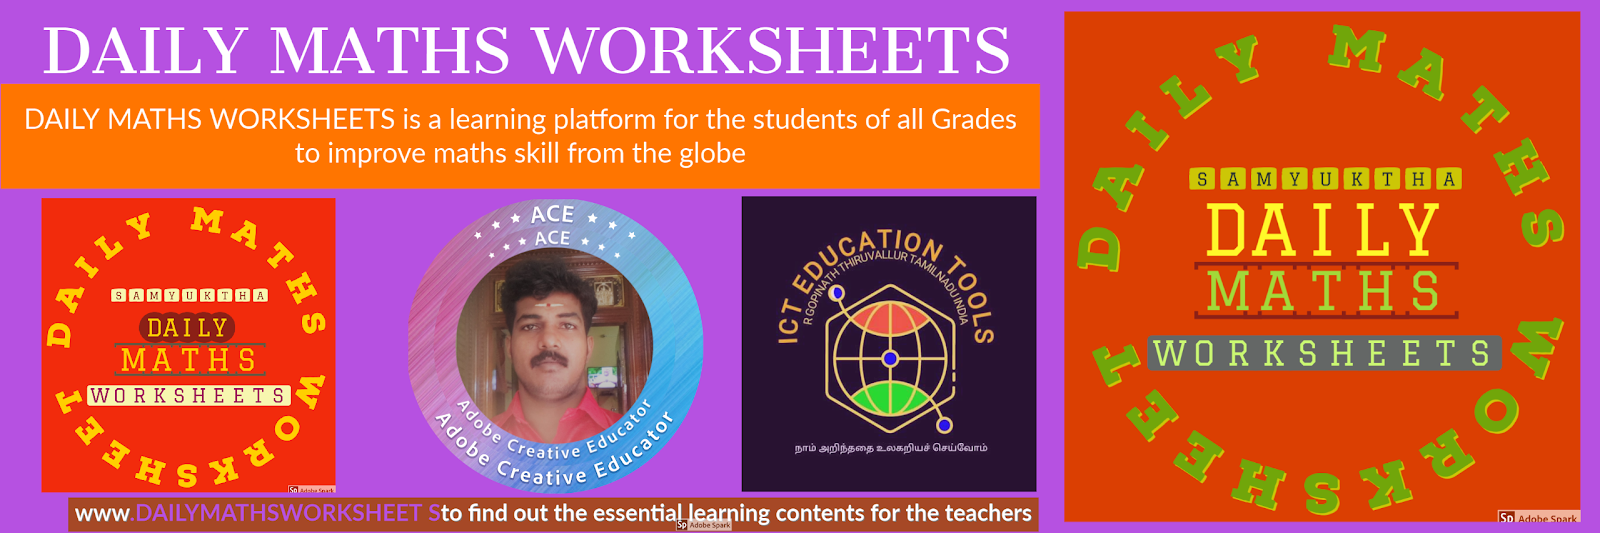 DAILY MATHS WORKSHEETS COLLECTIONS